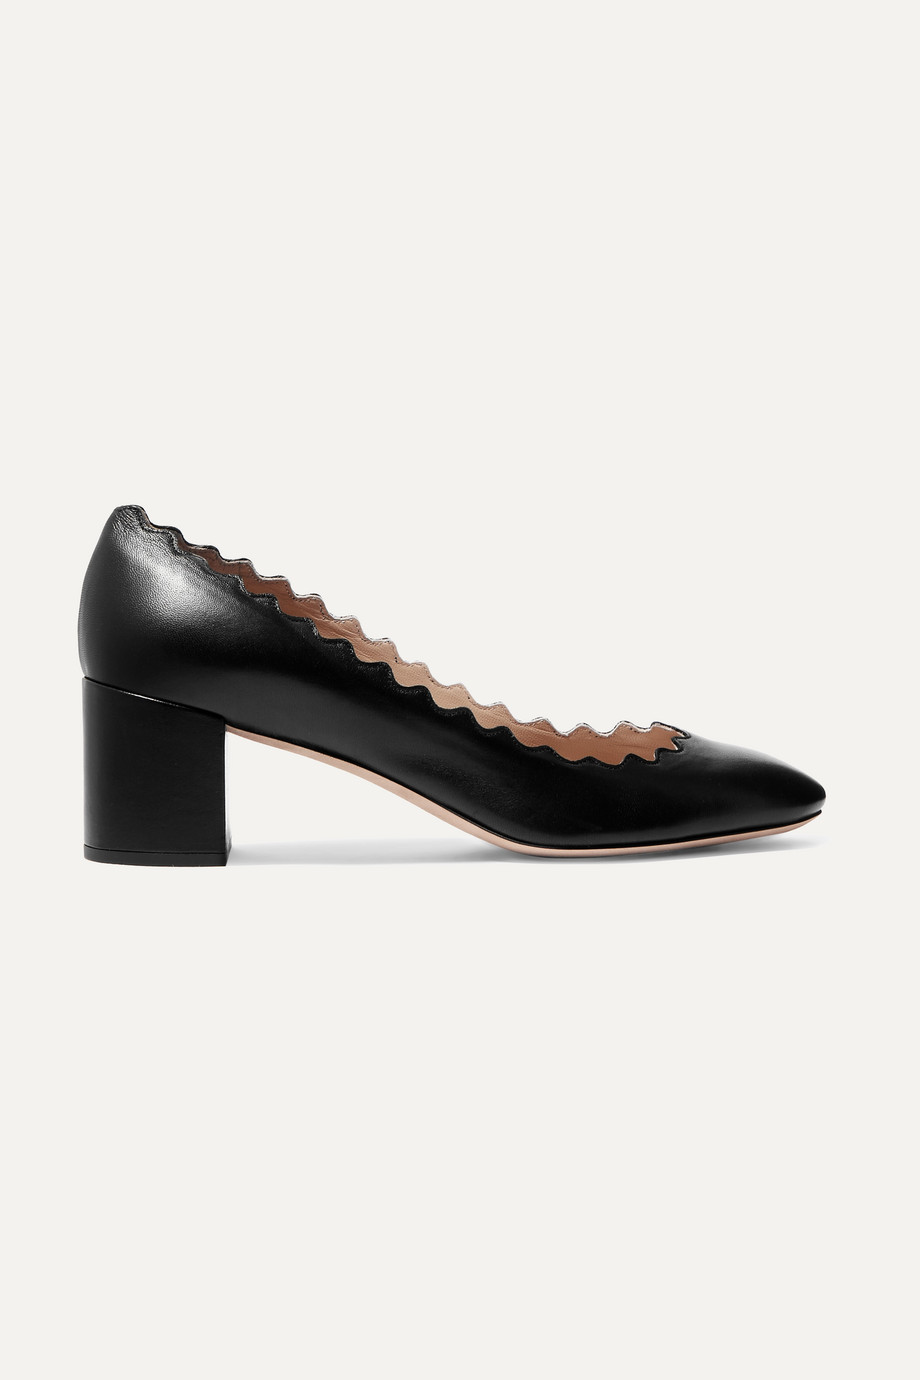 CHLOÉ Lauren scalloped leather pumps